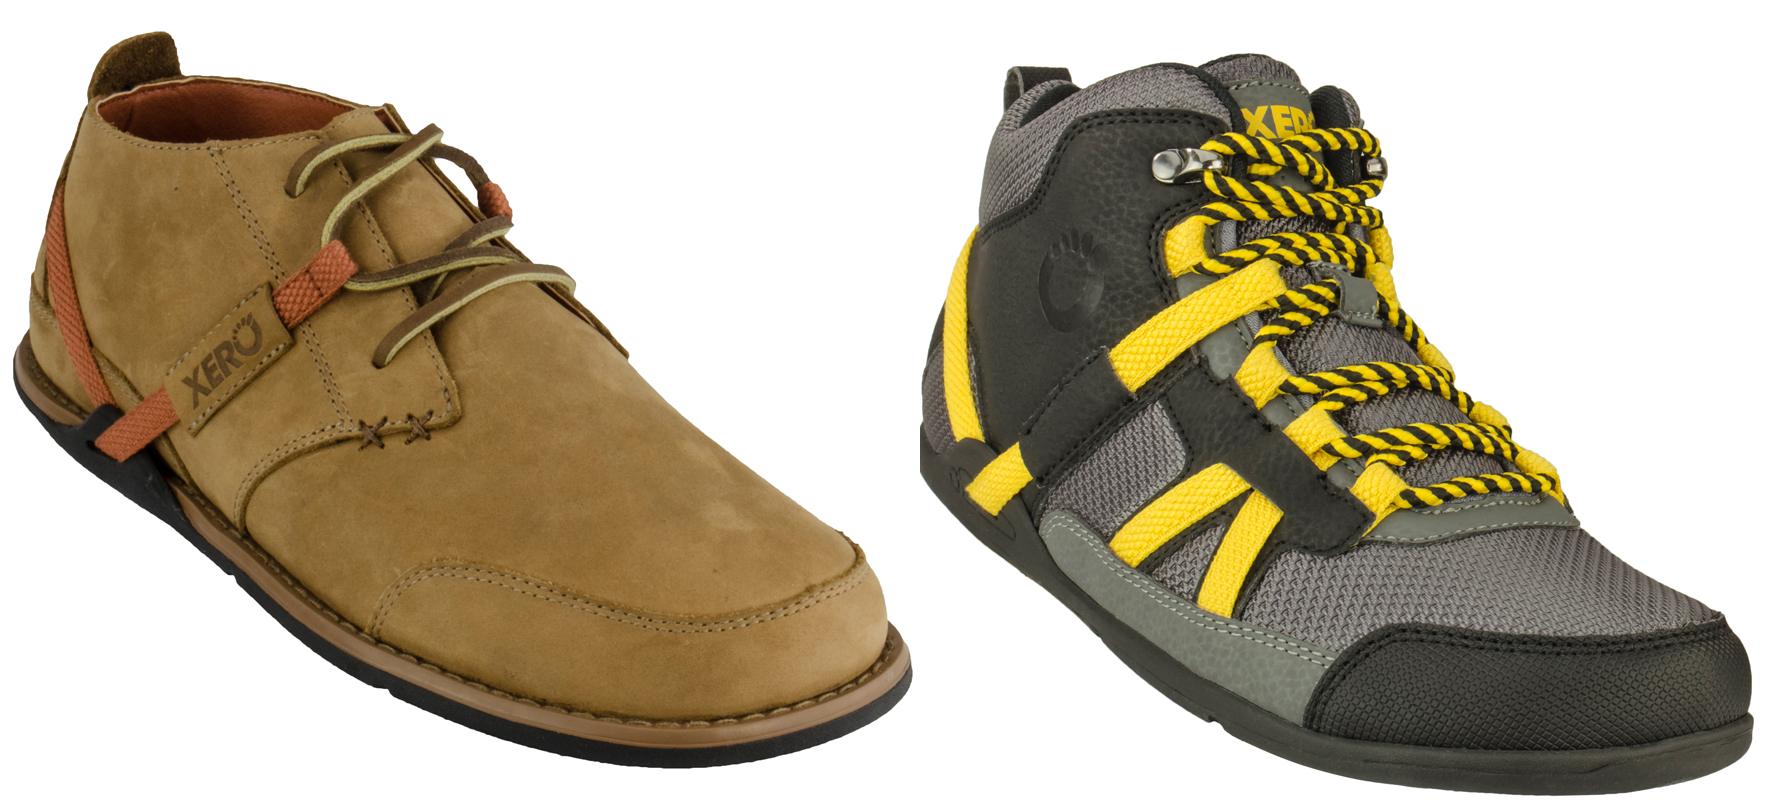 6fbc8bf01a36 WIN the New Casual and Hiking BOOTS from Xero Shoes - Xero Shoes